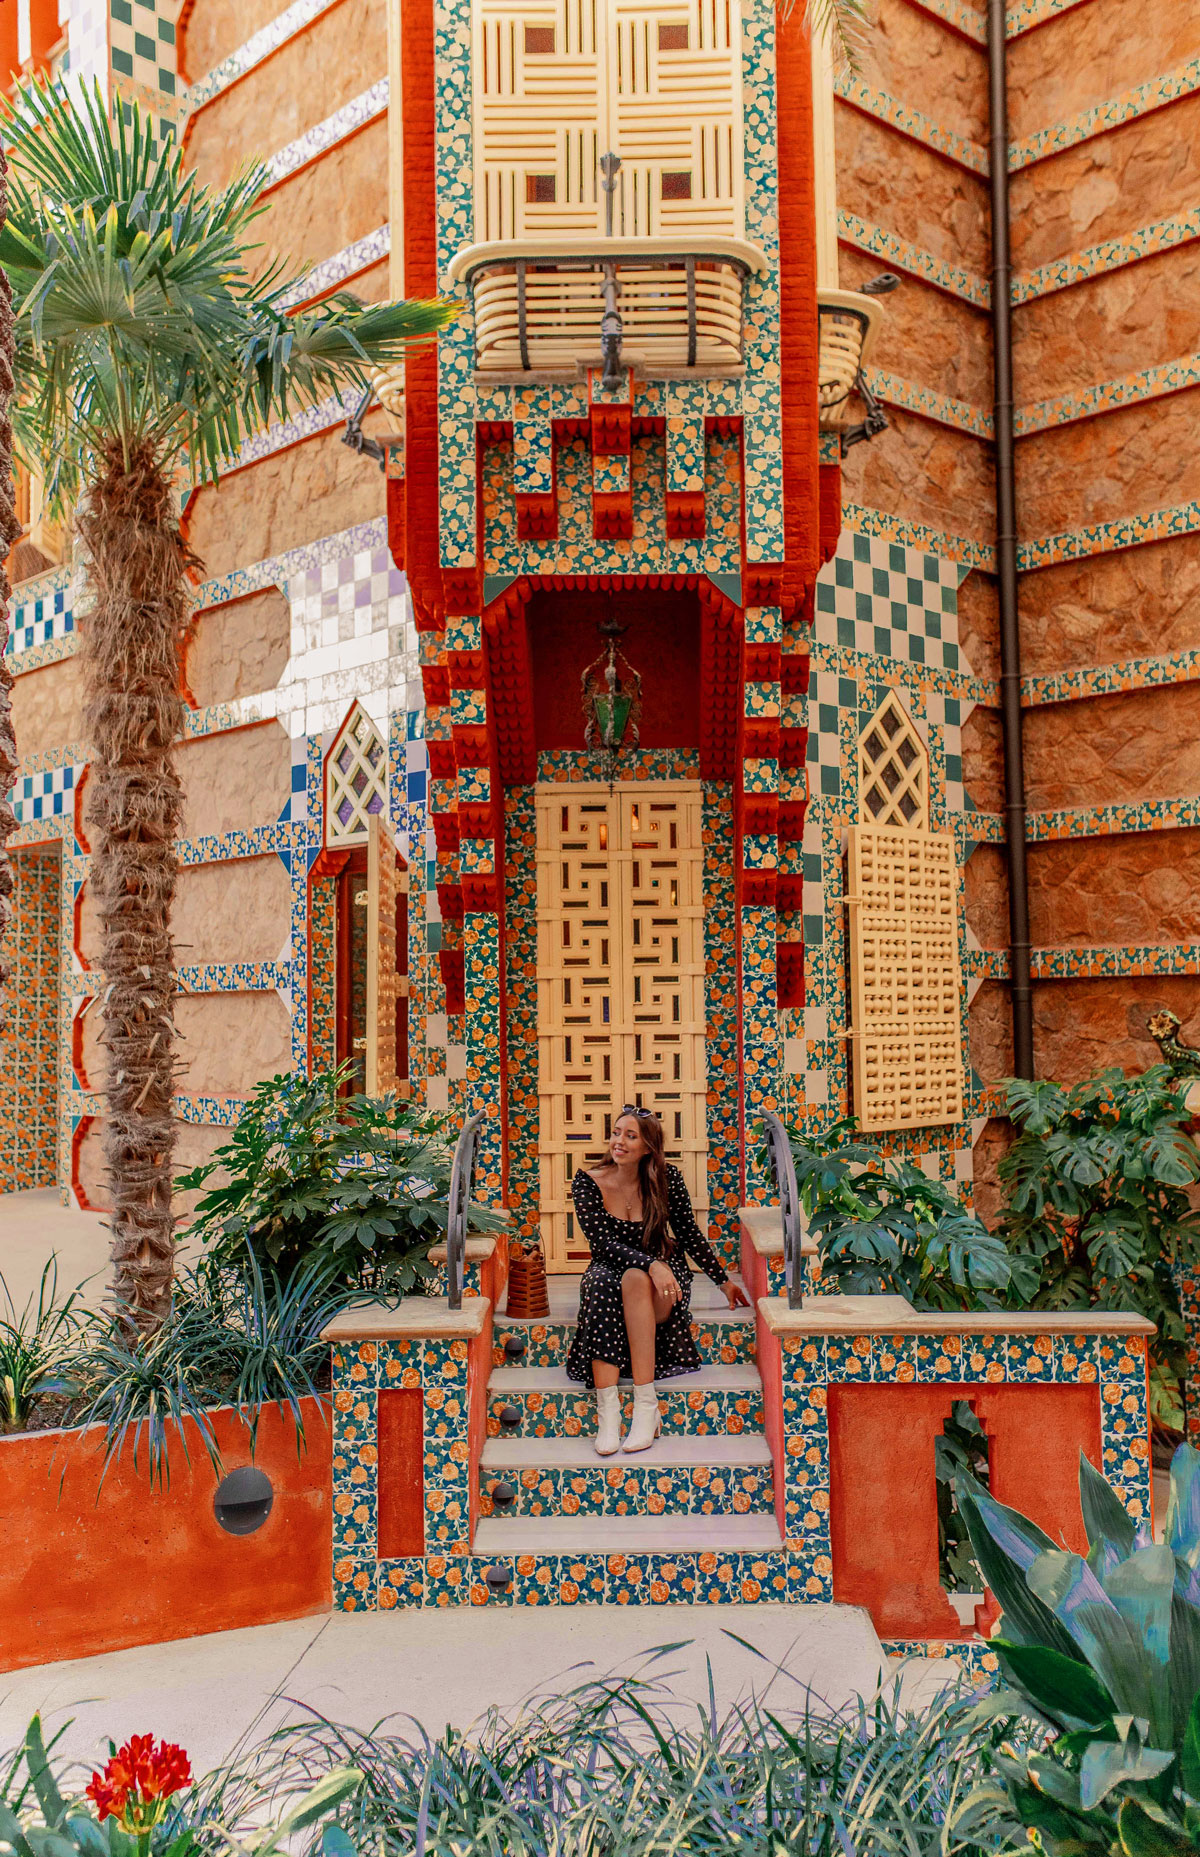 Top-things-to-do-in-Barcelona-Bucket-list--Instagram-Story-Template--kelseyinlondon-Kelsey-Heinrichs--What-to-do-in-Barcelona--Where-to-go-in-Barcelona-top-places-in-Barcelona-casa-vicens-2